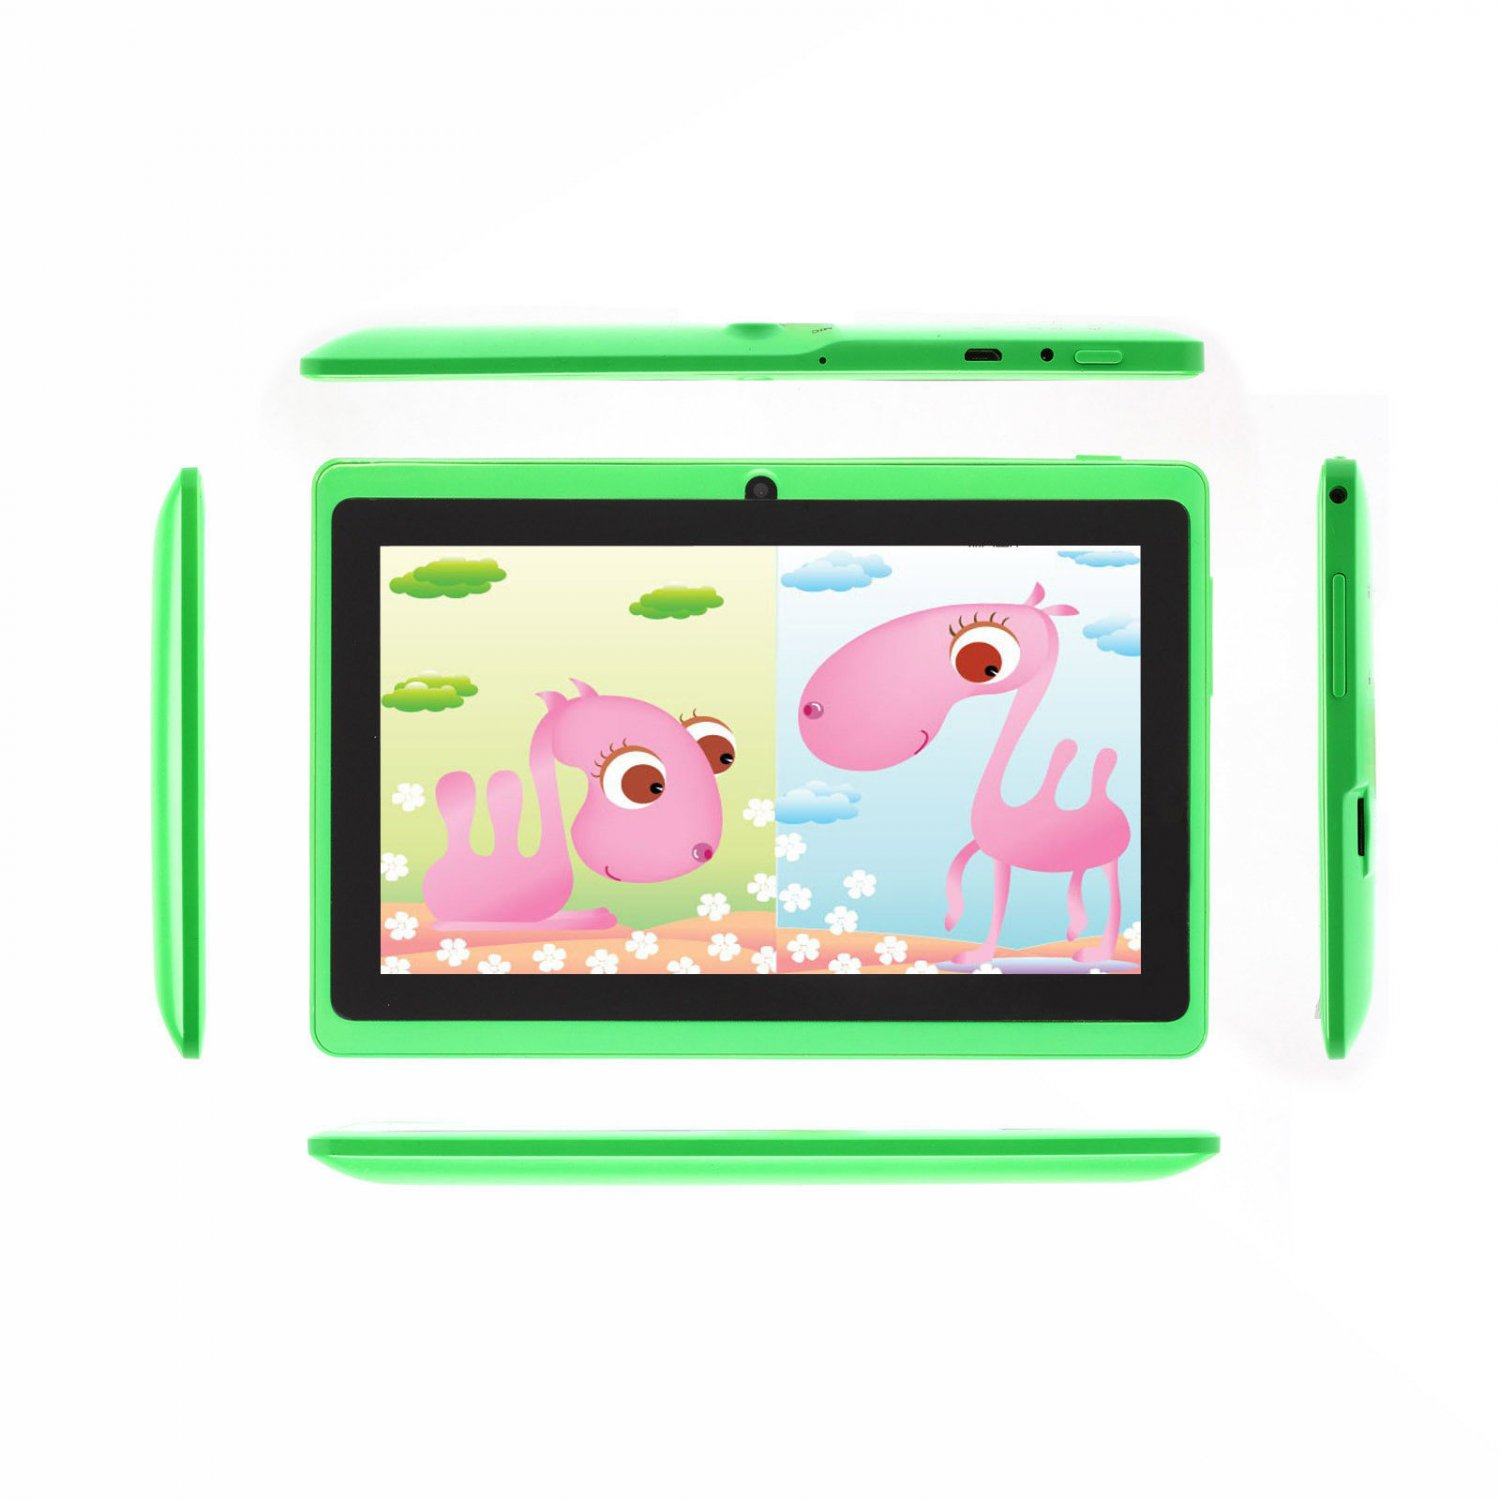 """iRulu 7"""" Tablet PC Android 4.2 Dual Core A23 1.5GHz Dual Camera - Green"""